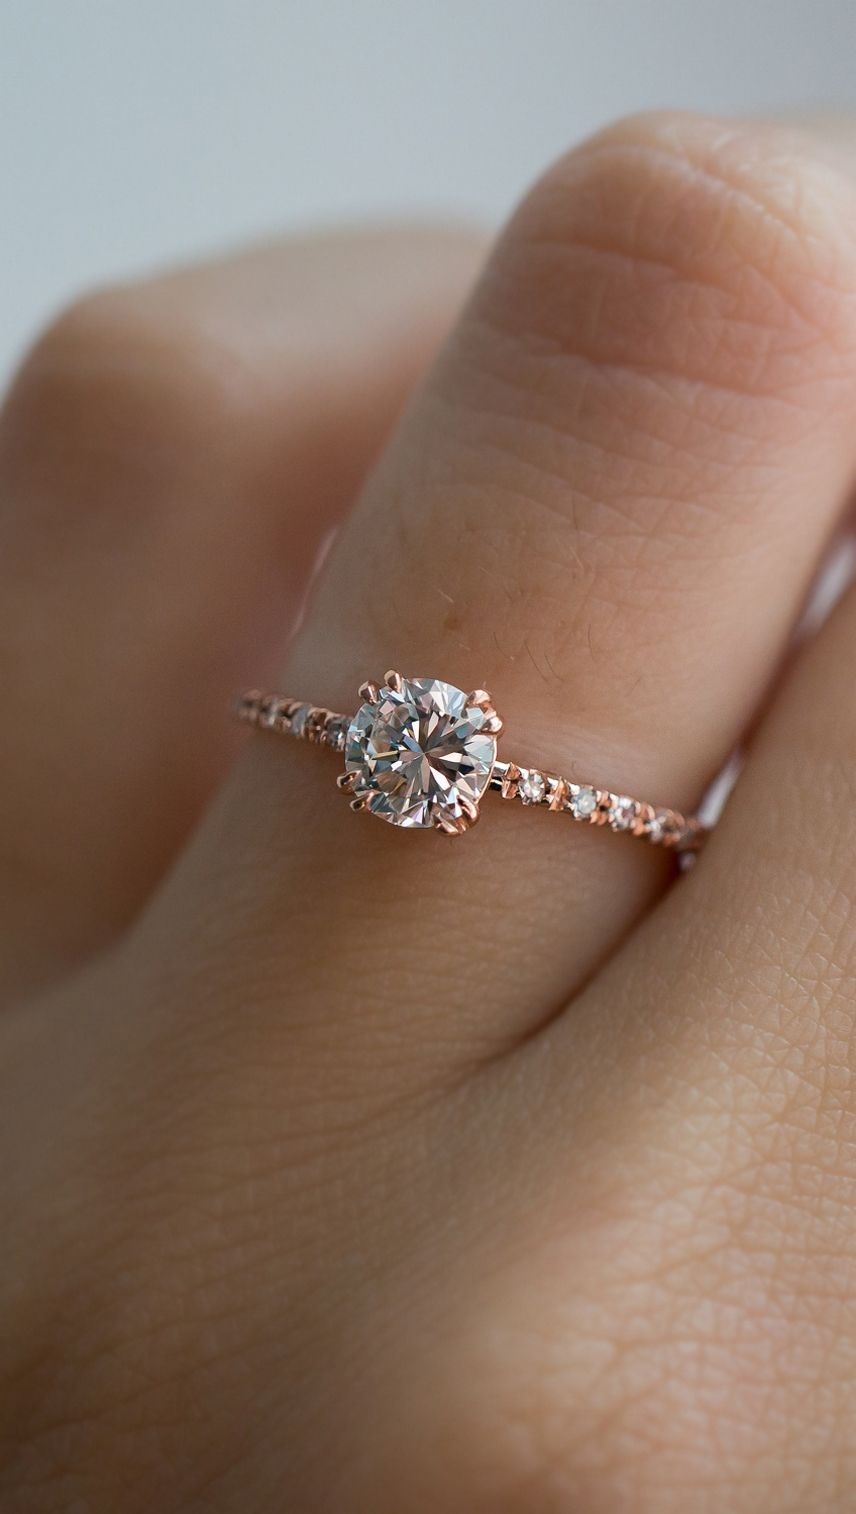 100 simple vintage engagement rings inspiration engagements ring 100 simple vintage engagement rings inspiration httpsbridalore20170503100 simple vintage engagement rings inspiration junglespirit Images